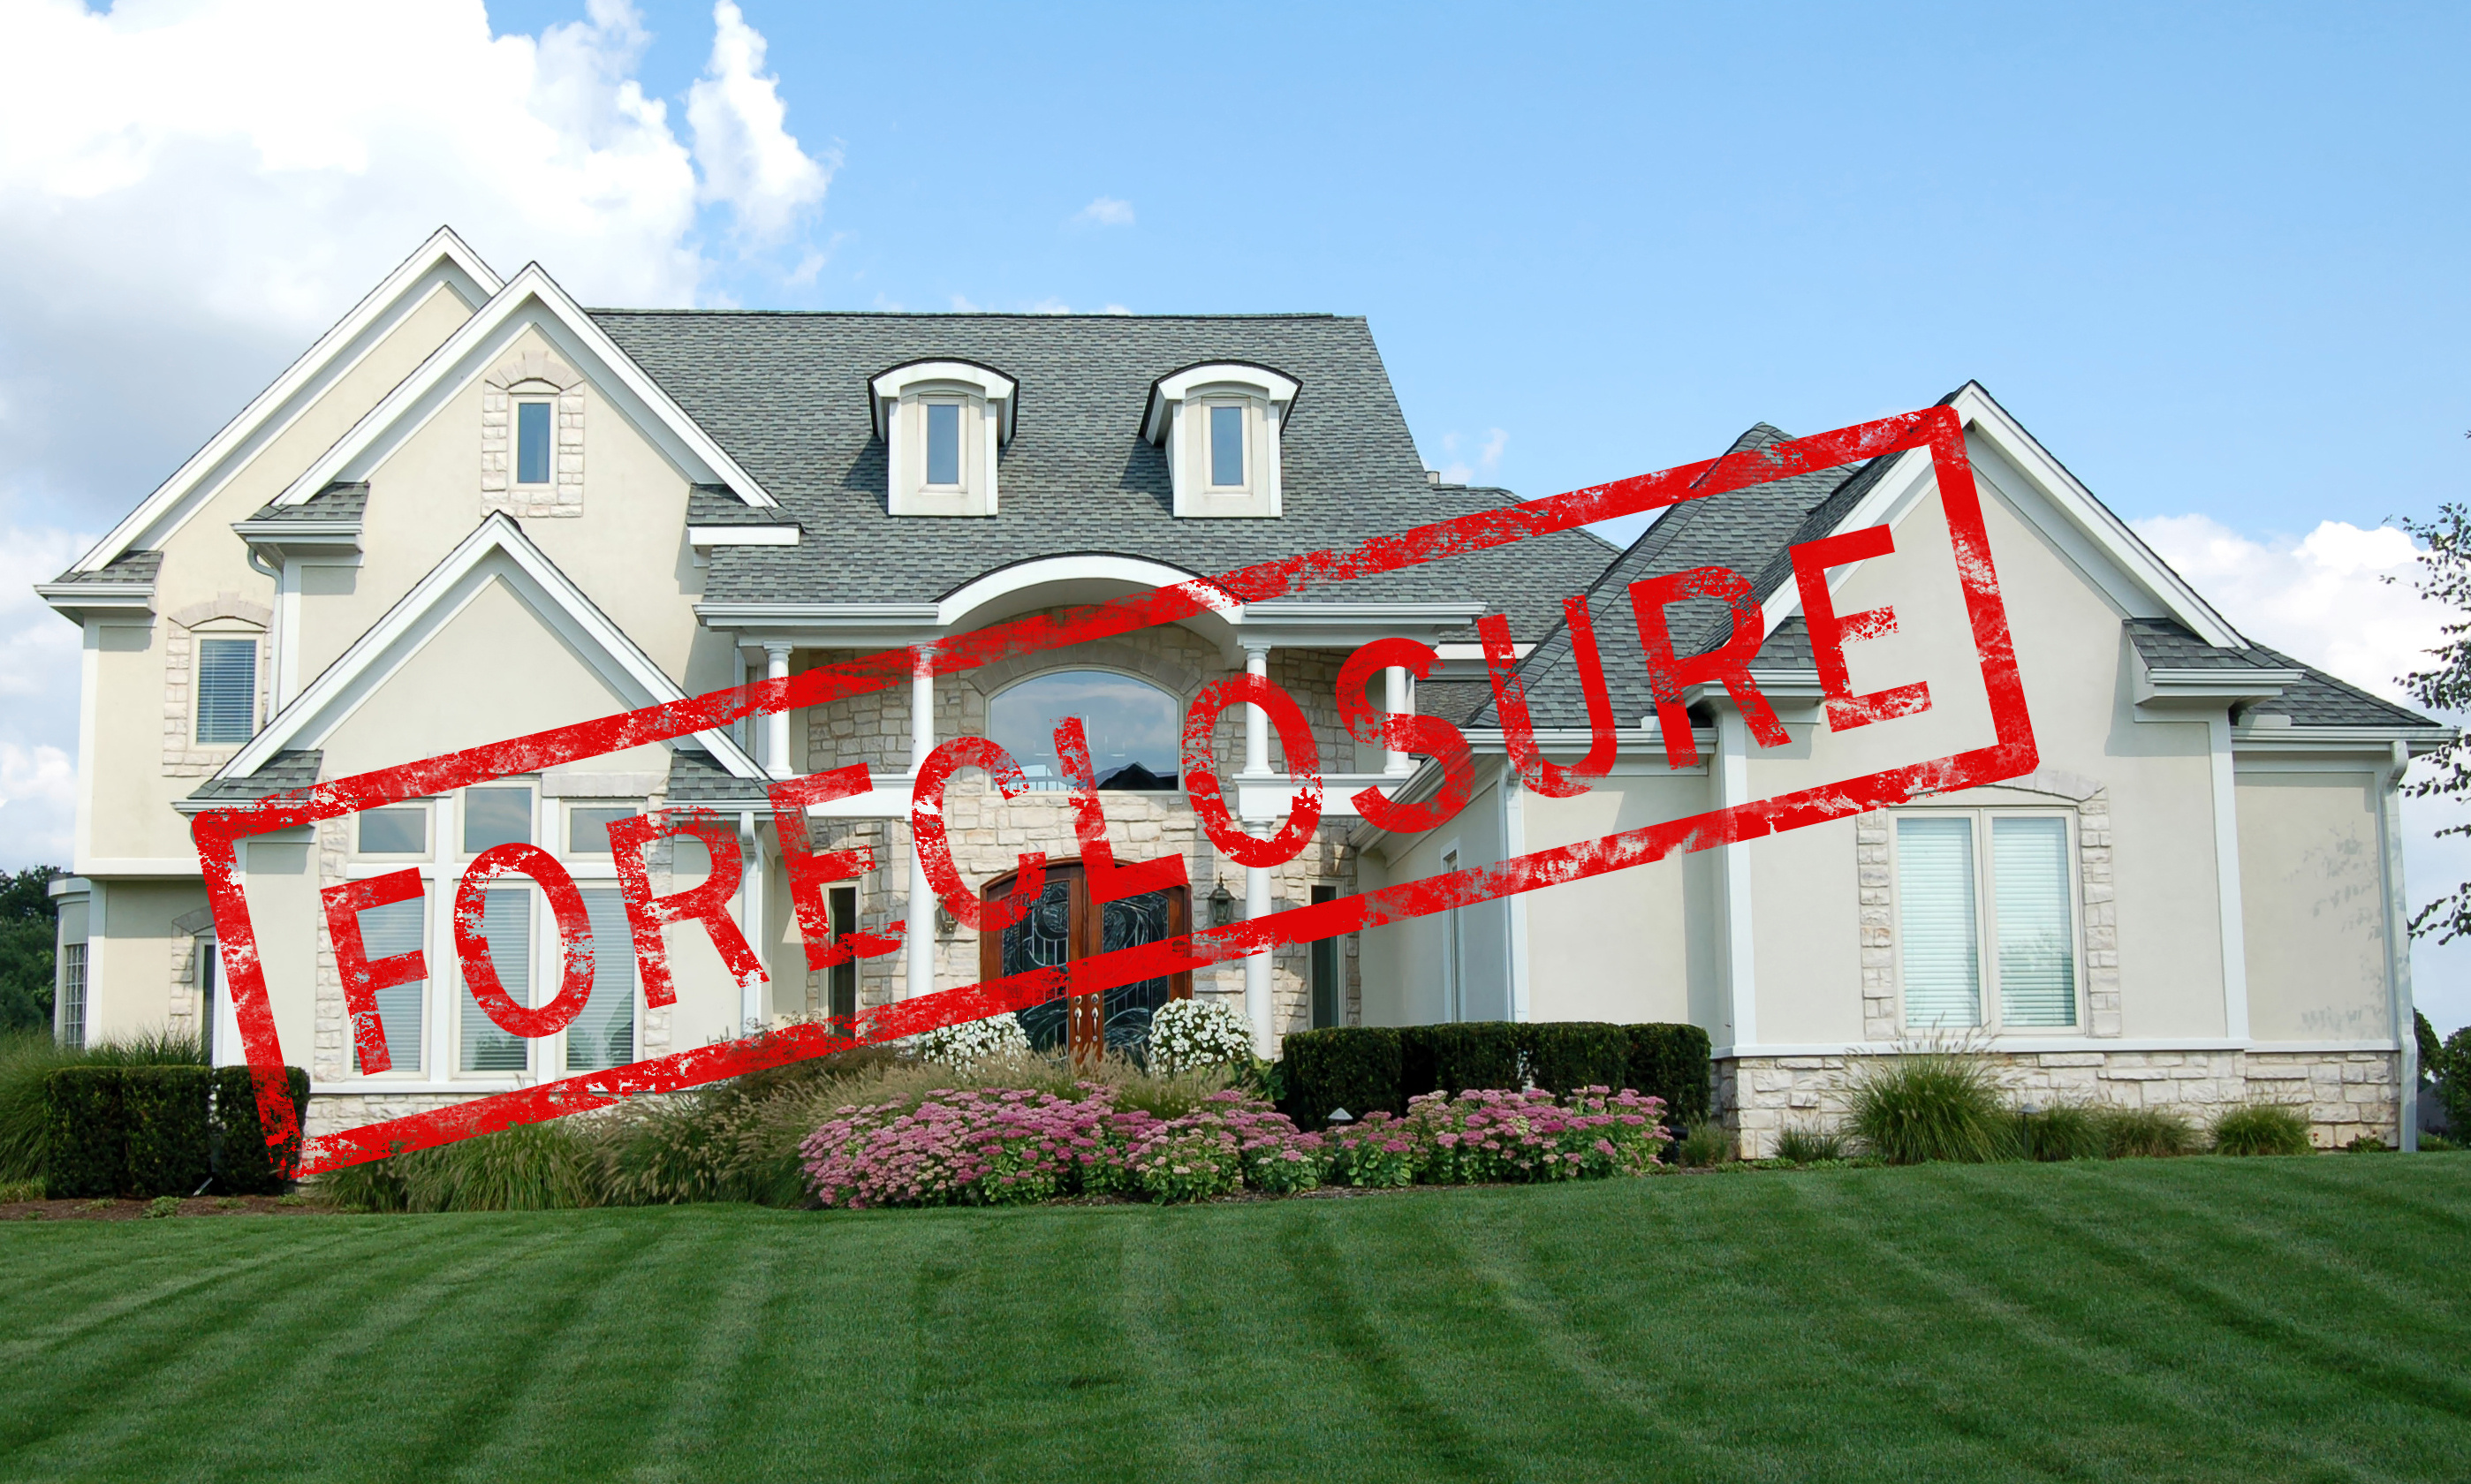 Call ASAP Appraisal Services, Inc. when you need appraisals pertaining to Maricopa foreclosures